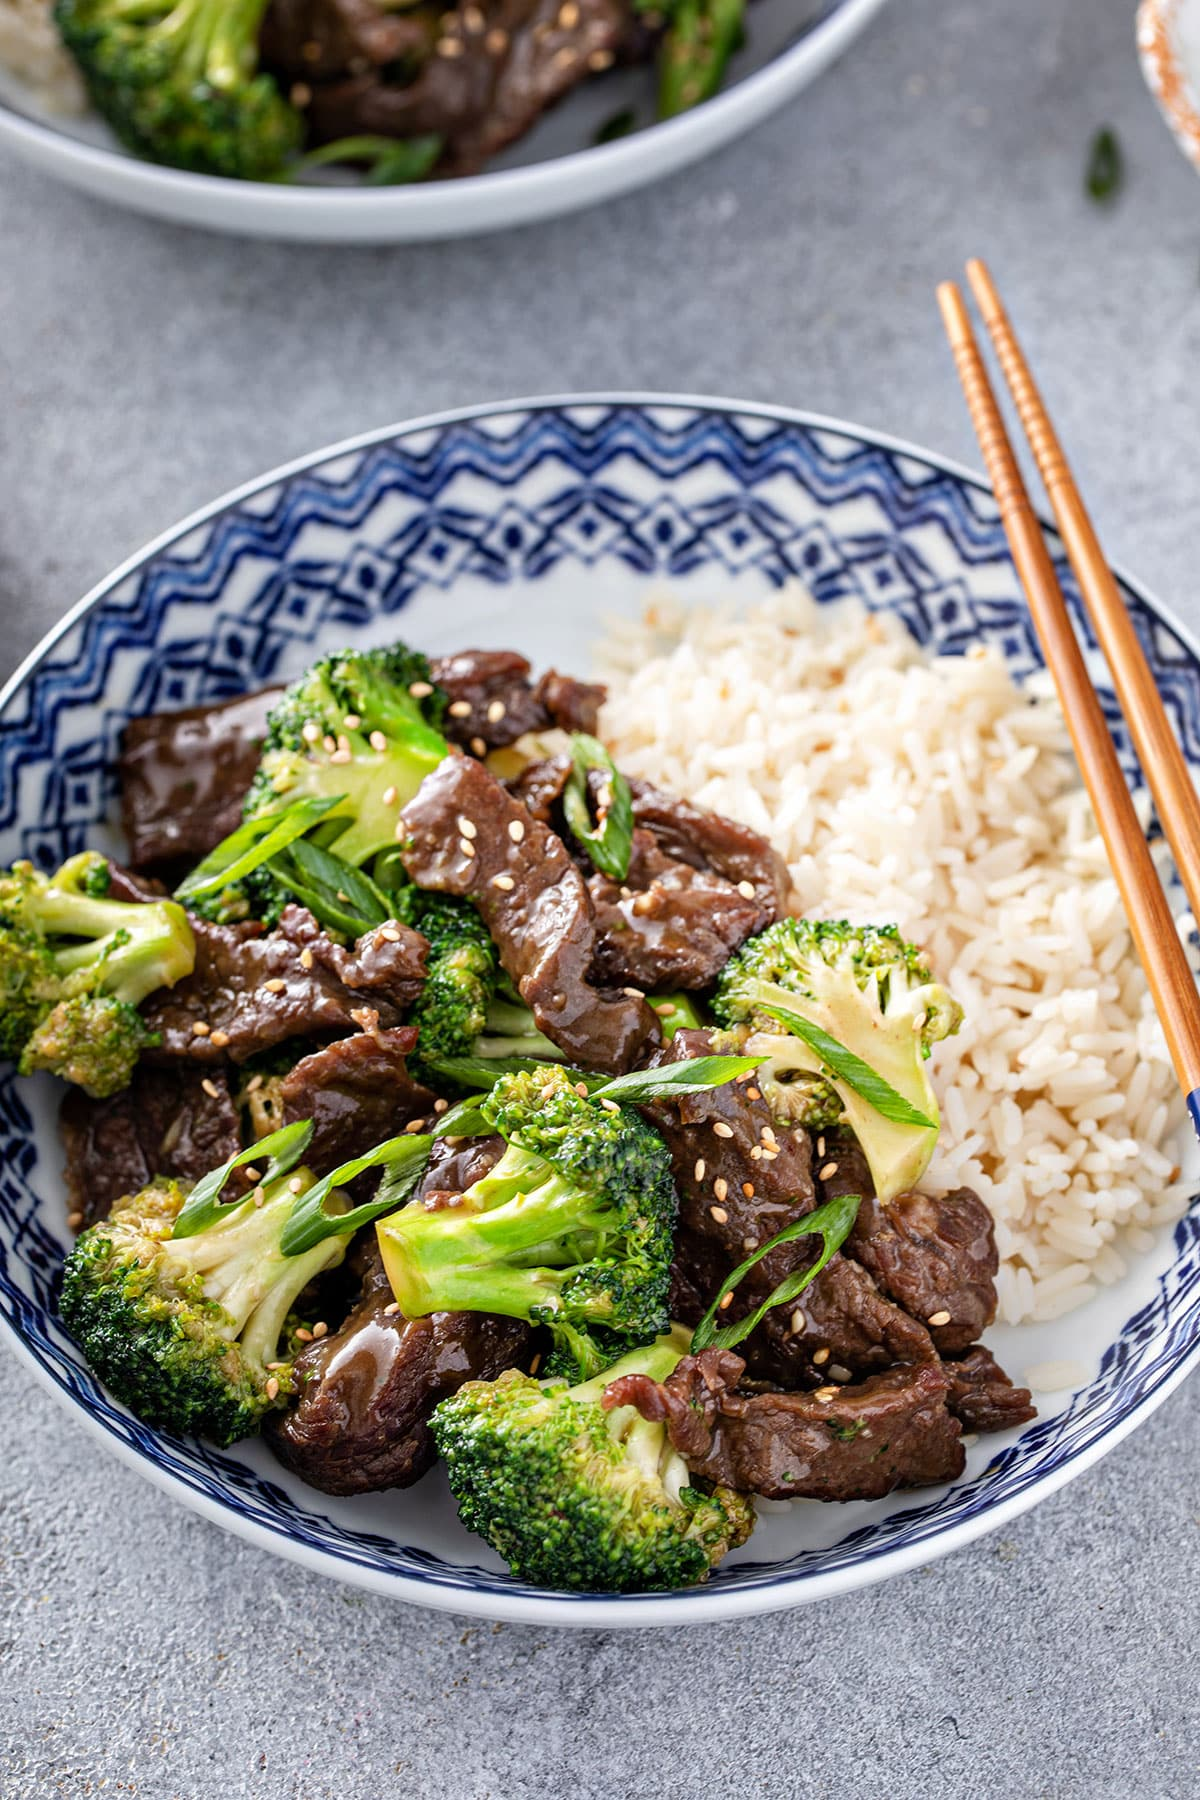 Close up view of Beef with Broccoli in a wok.